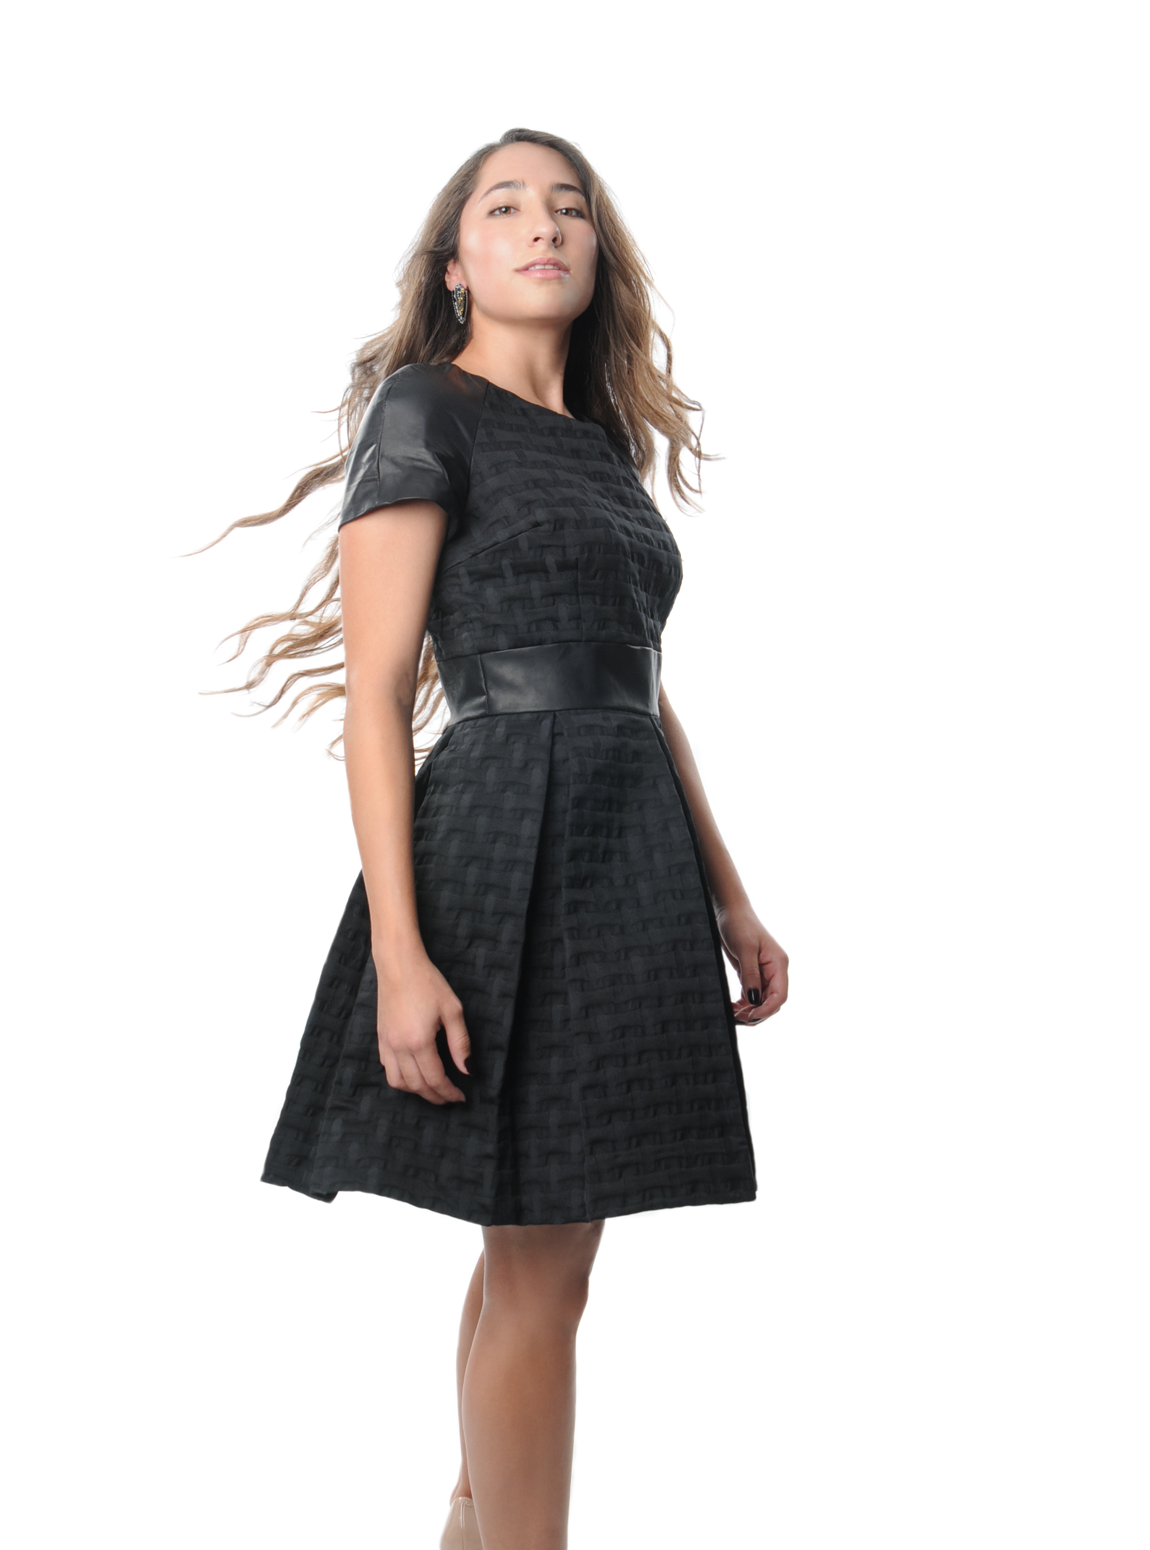 Djeeg'n Miriam Dress